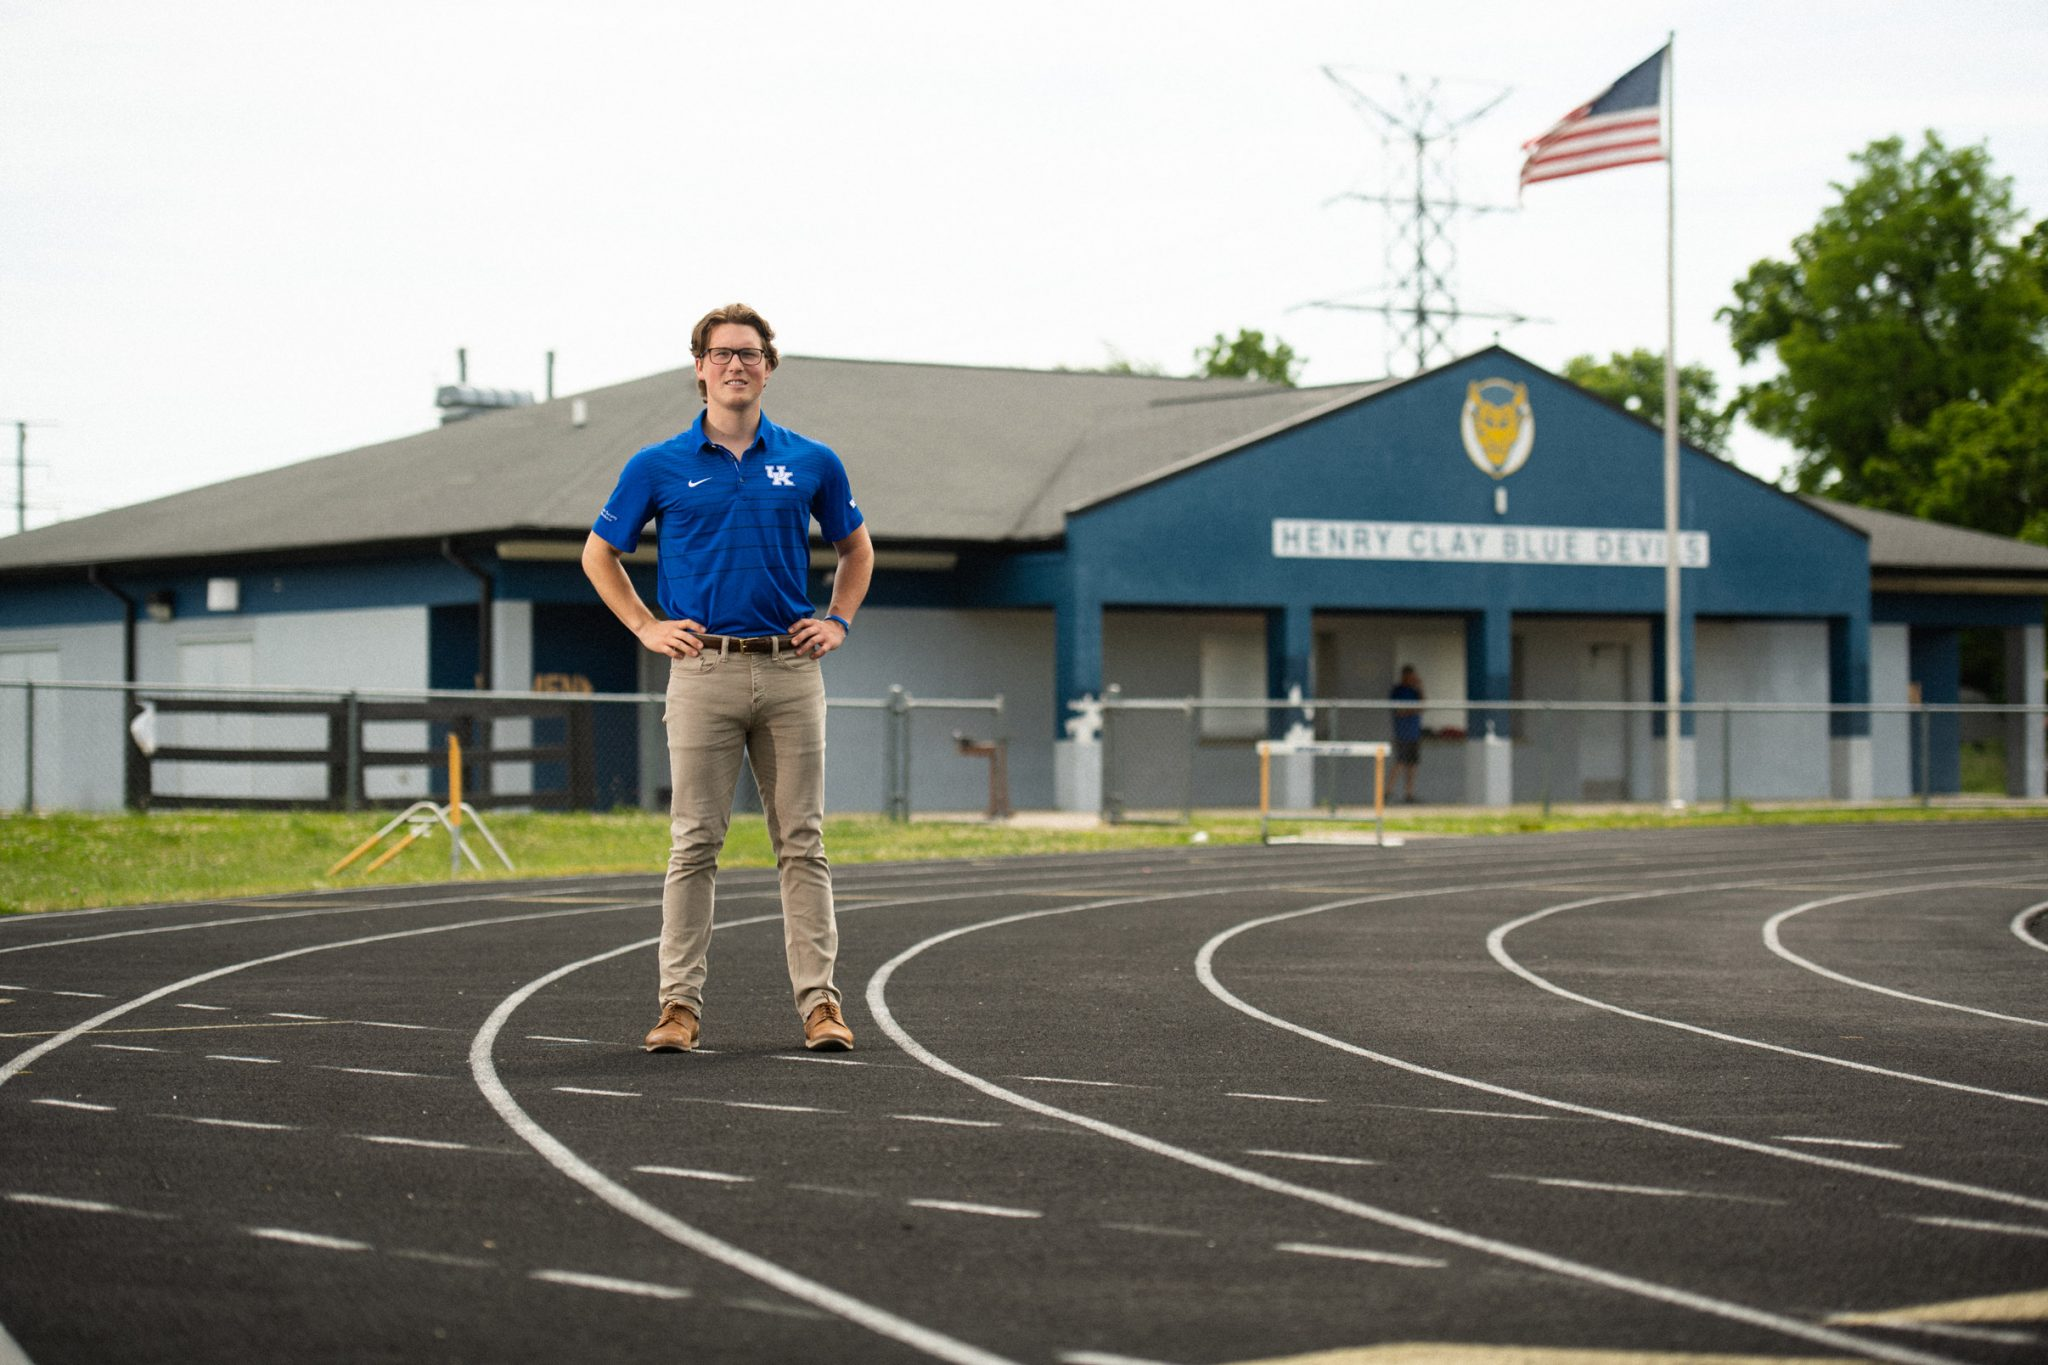 Peter stands outside on the running track at Henry Clay High School.